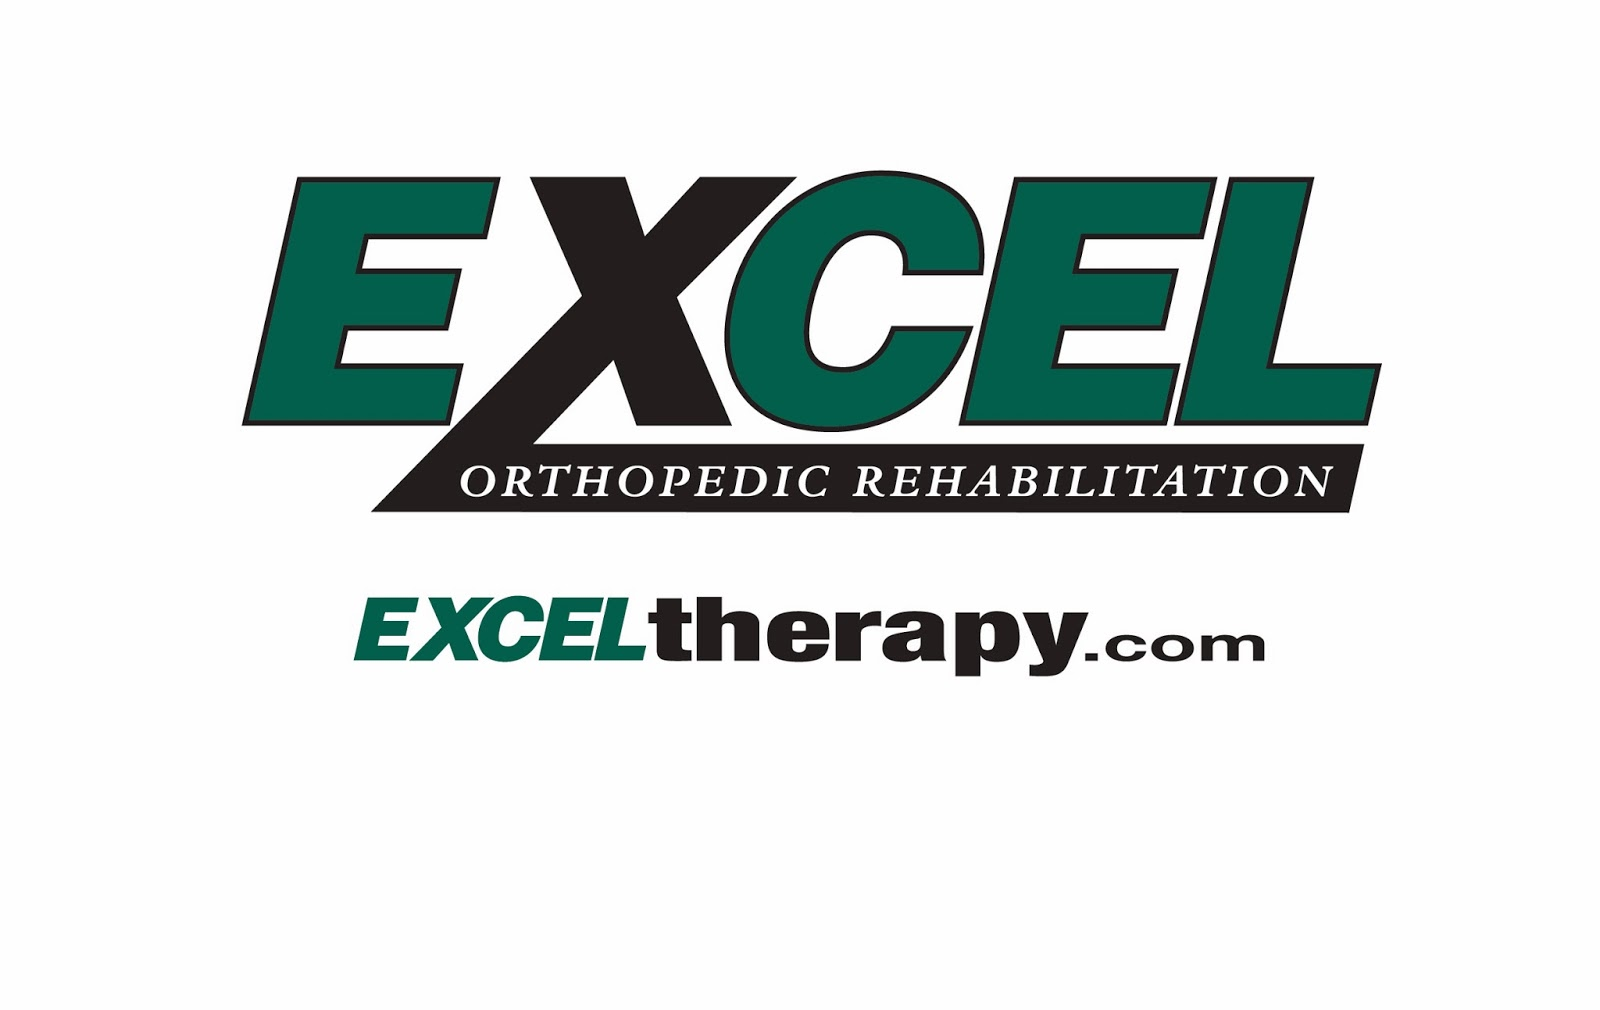 Excel physical therapy - Excel Orthopedic Physical Therapy With Multiple Locations In The North Jersey Area Has Been Providing Physical Therapy For Athletes For Over Twenty Years